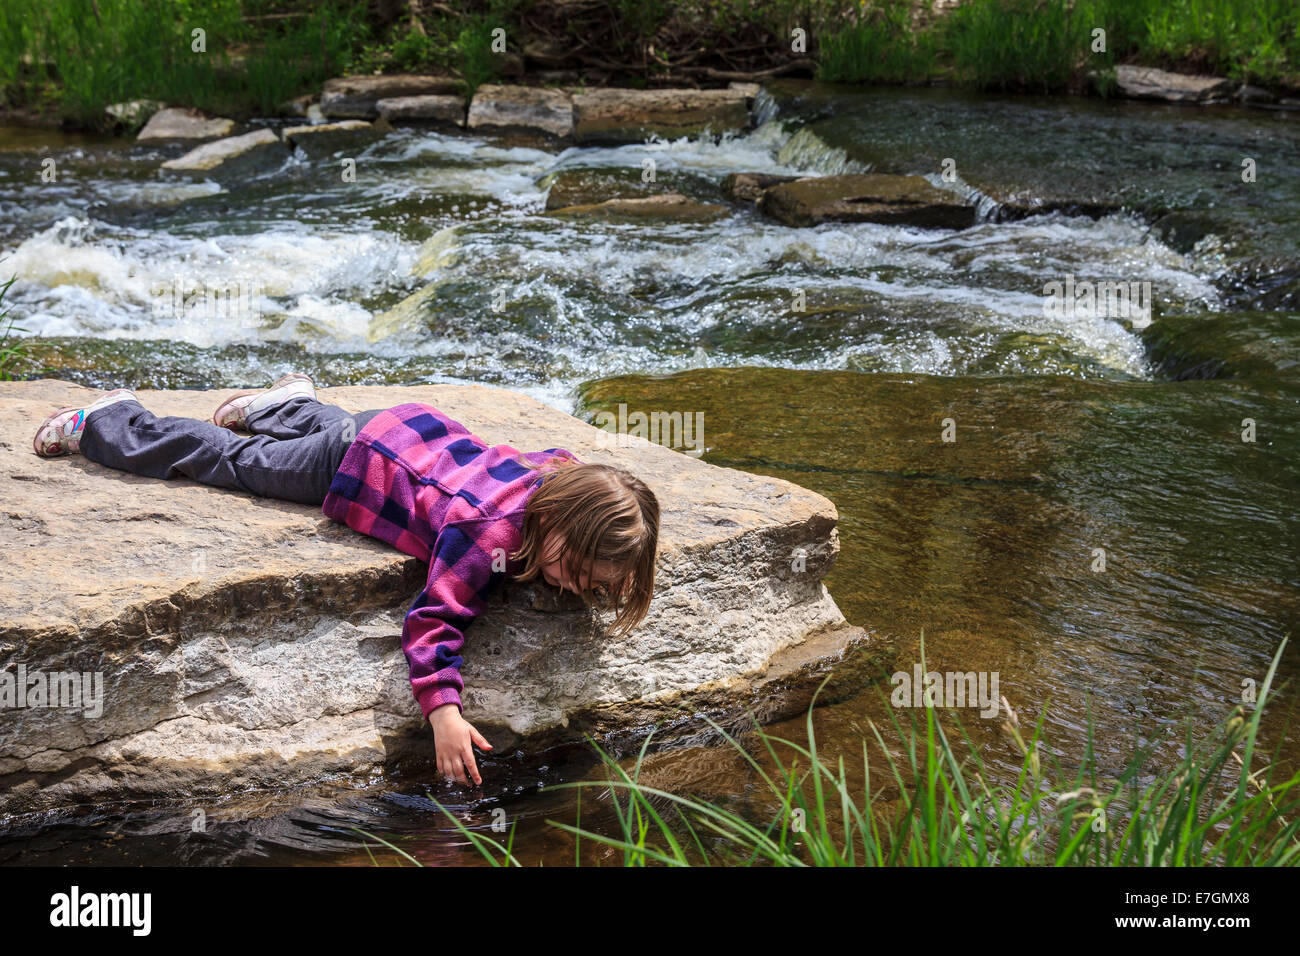 Young girl playing by a stream in the woods.  Tentatively dipping her hand in the water. - Stock Image